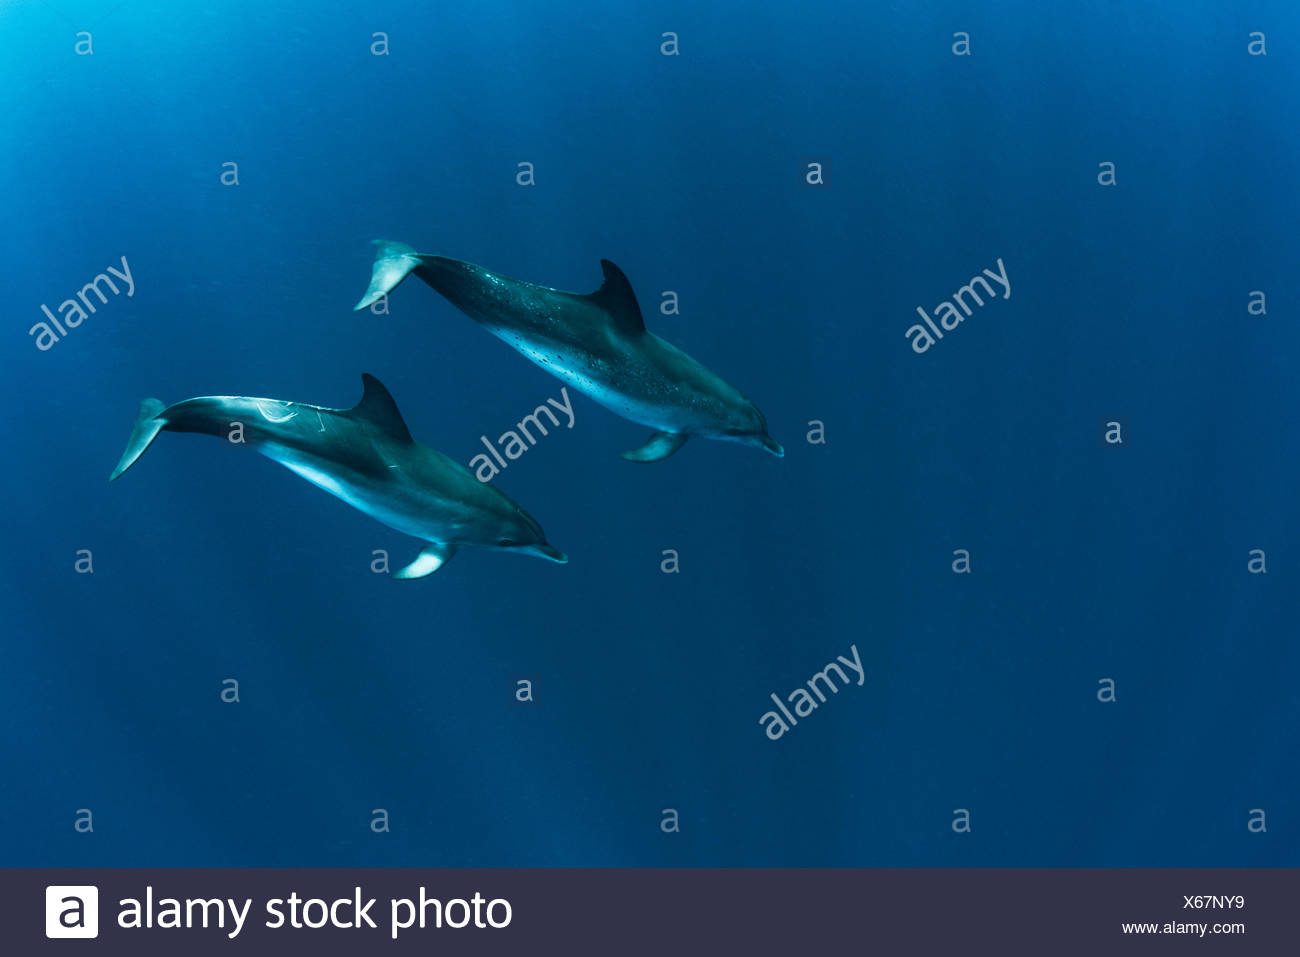 Pair of atlantic spotted dolphins (stenella frontalis) swimming in ocean, Isla Mujeres, Mexico - Stock Image